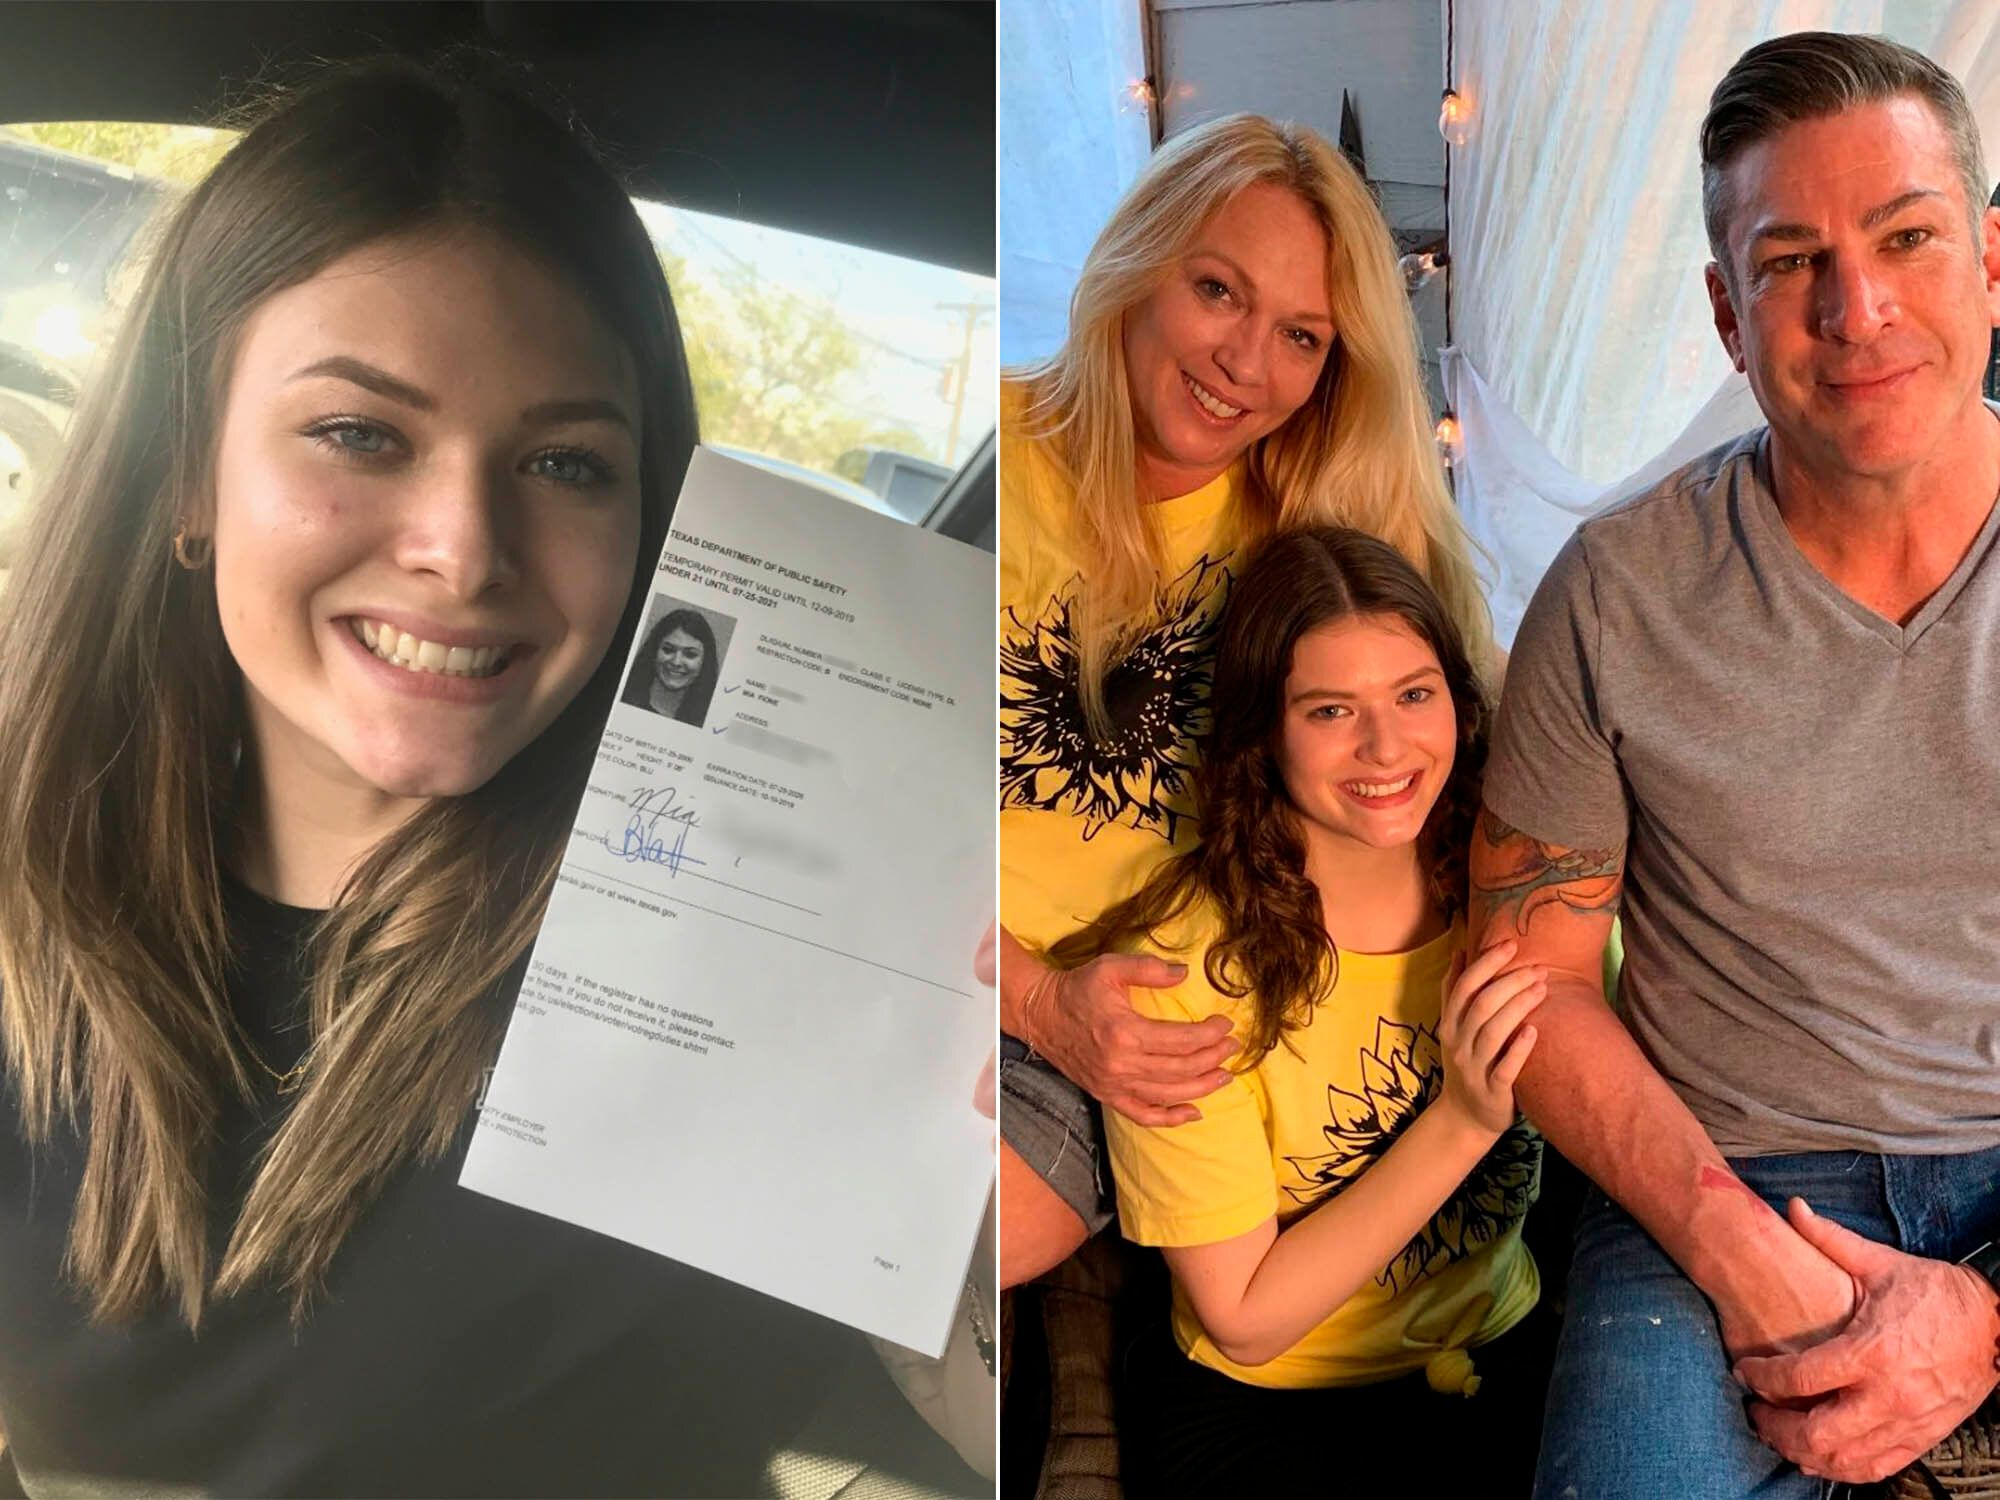 Mia after being issued a temporary driver's license in October (left), and Mia with her parents on Sept. 30, the day she was